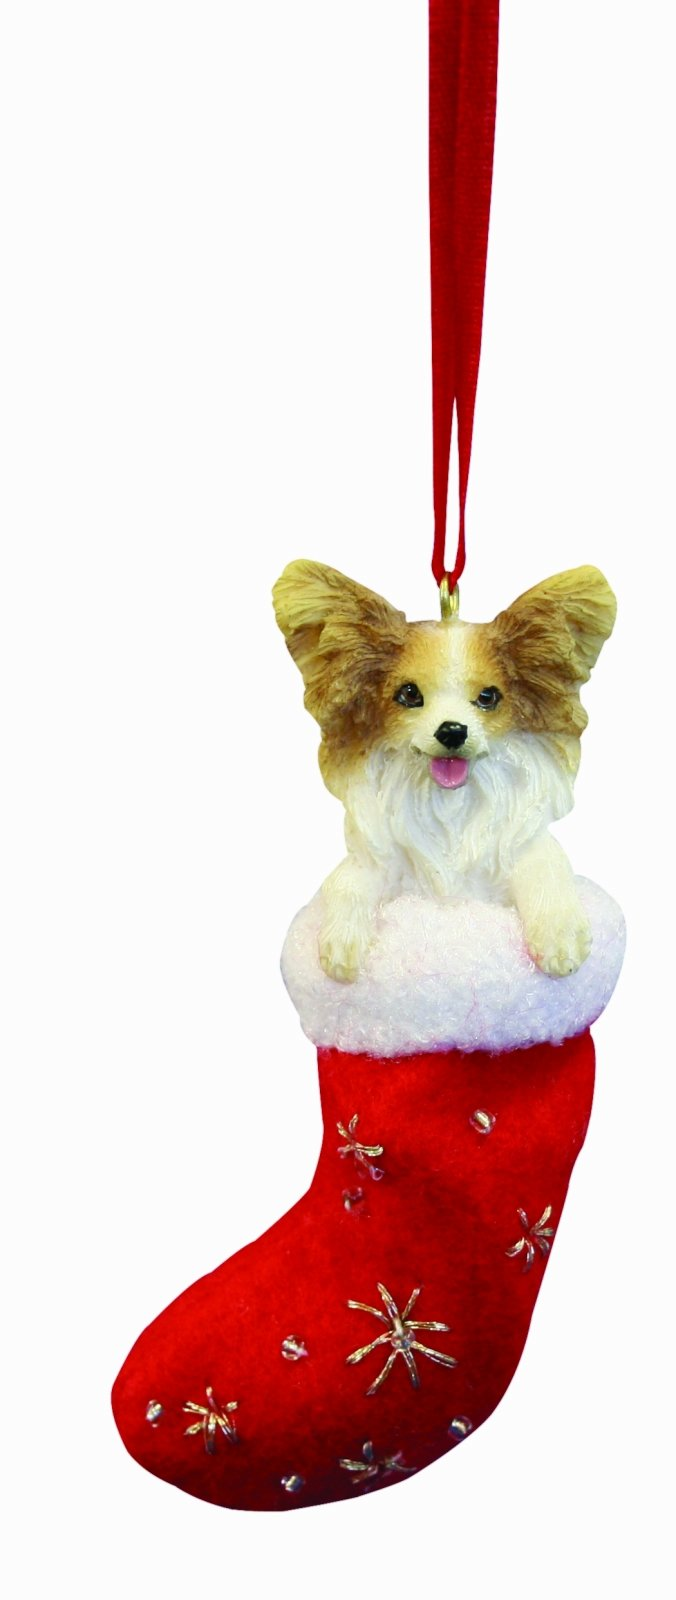 """Papillion Christmas Stocking Ornament with """"Santa's Little Pals"""" Hand Painted and Stitched Detail"""